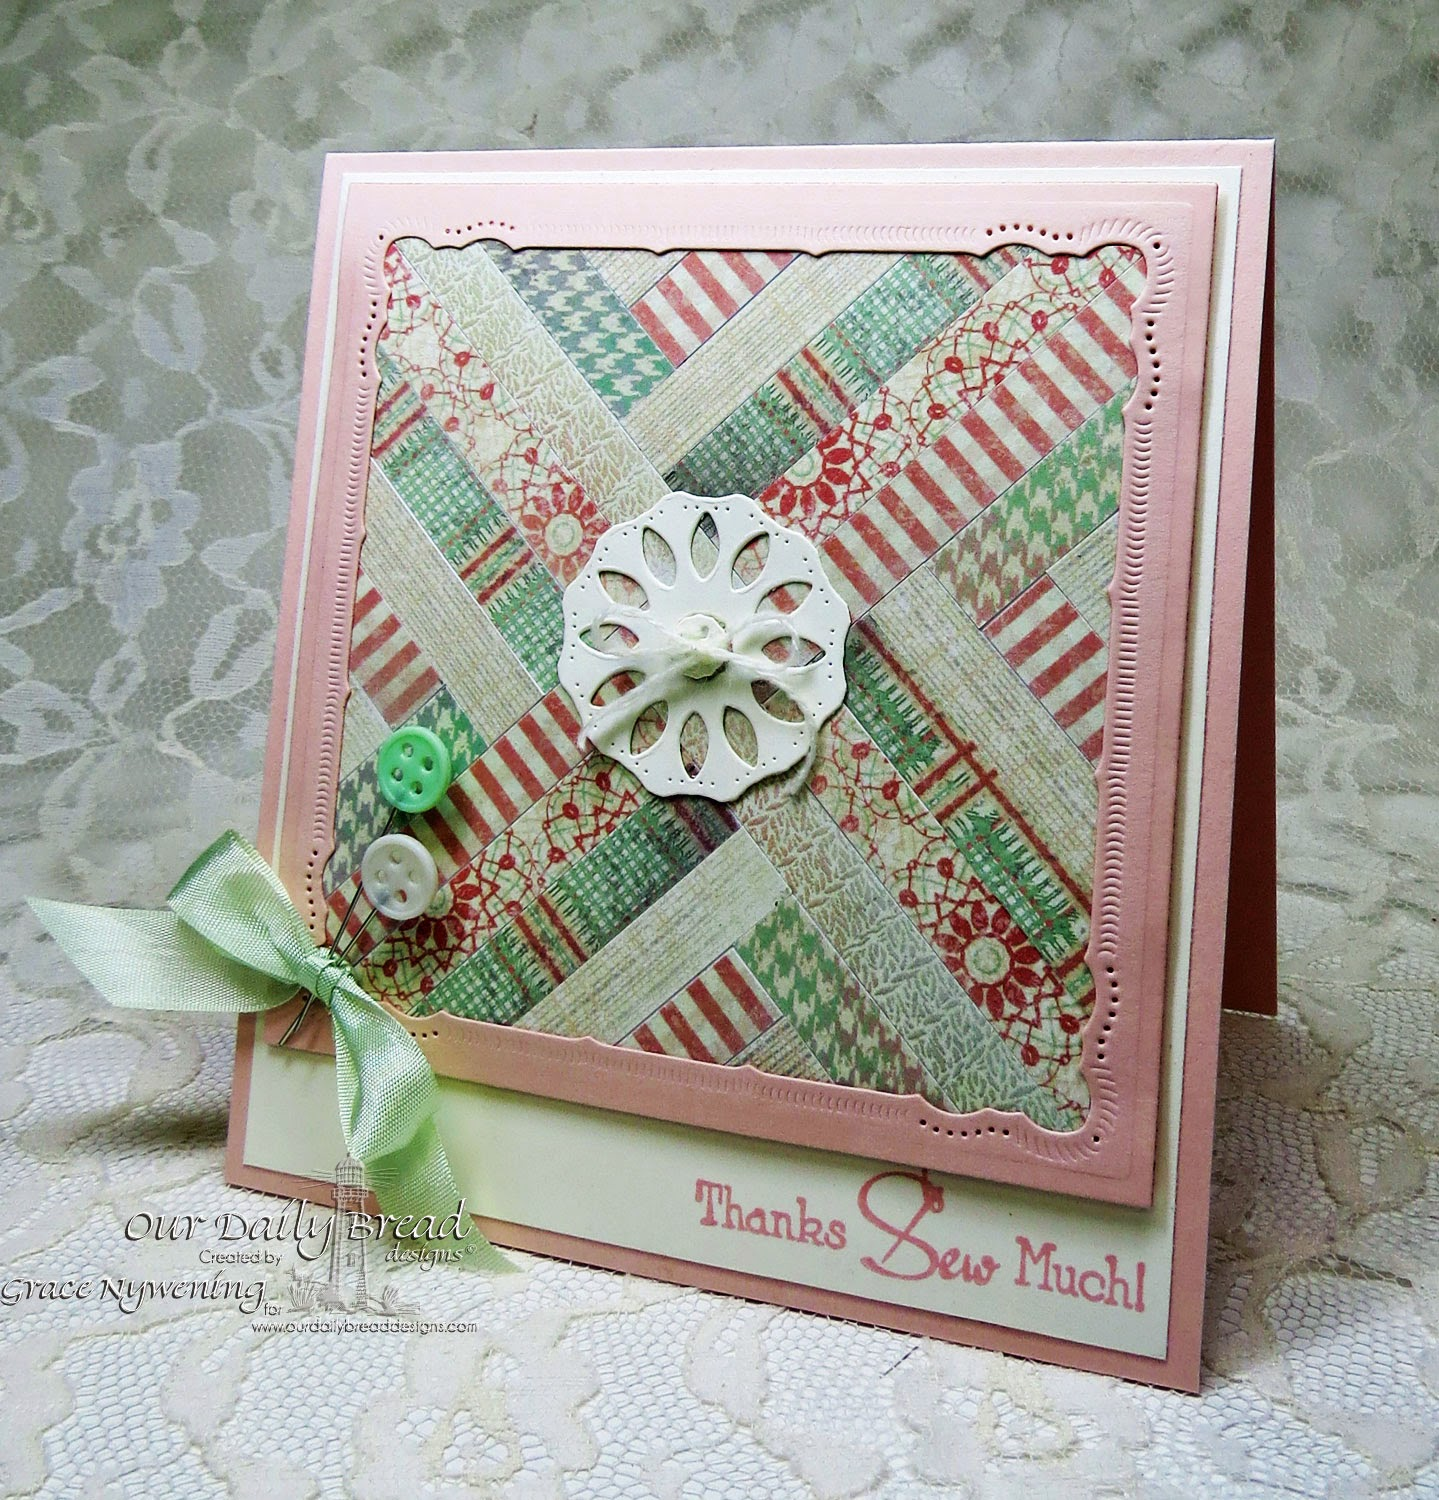 ODBD Stamps and dies: Quilts, Doily Die, designed by Grace Nywening